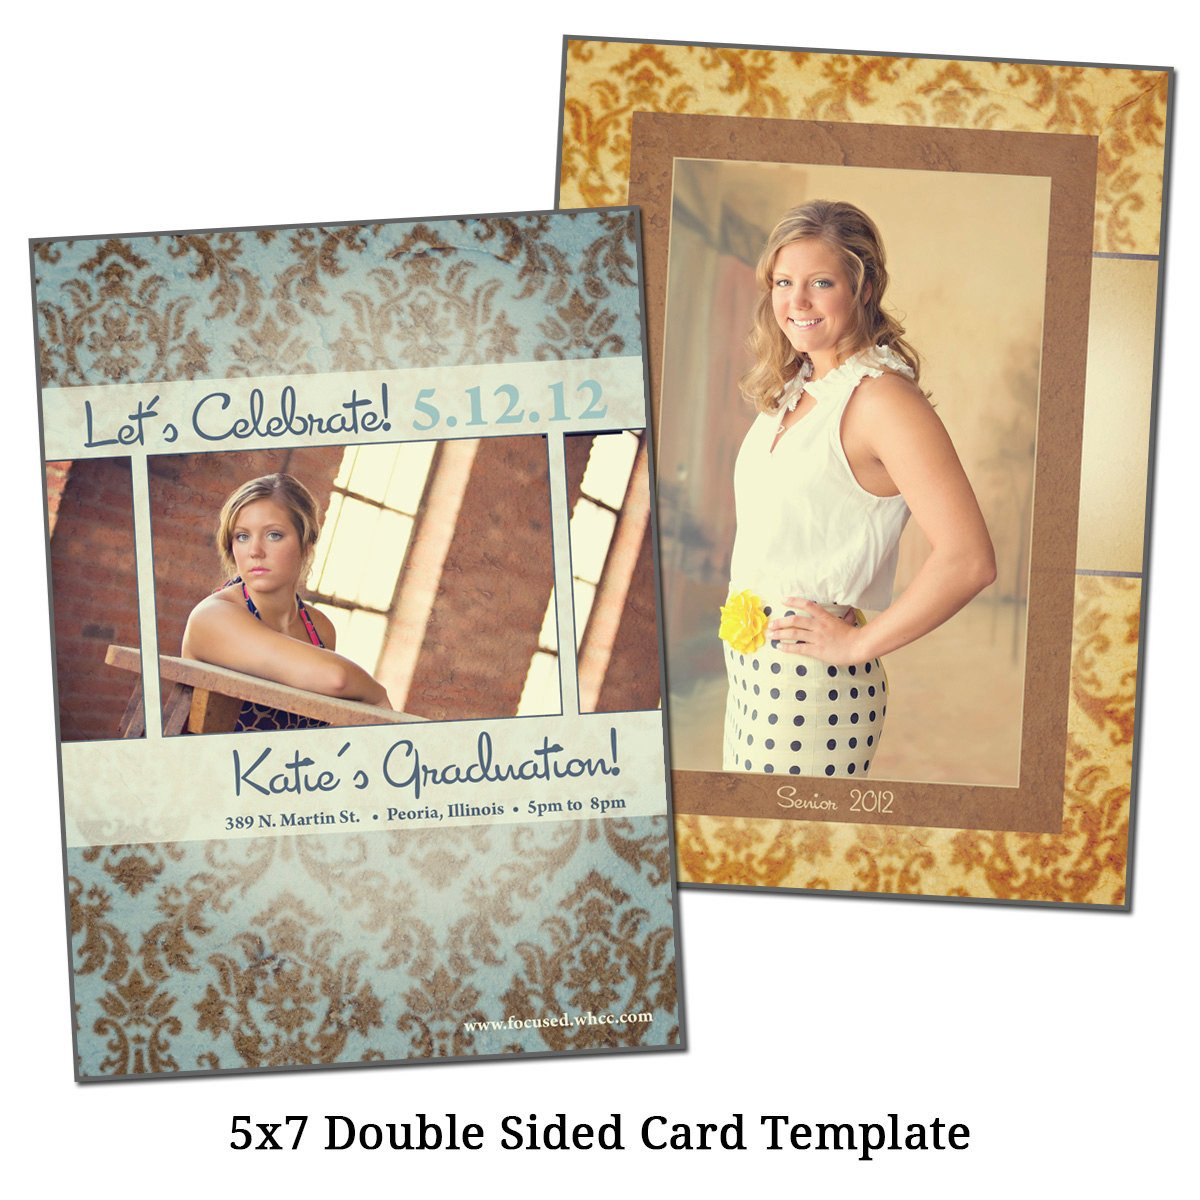 Two Sided Postcard Template 5x7 Double Sided Card Template Senior Damask by